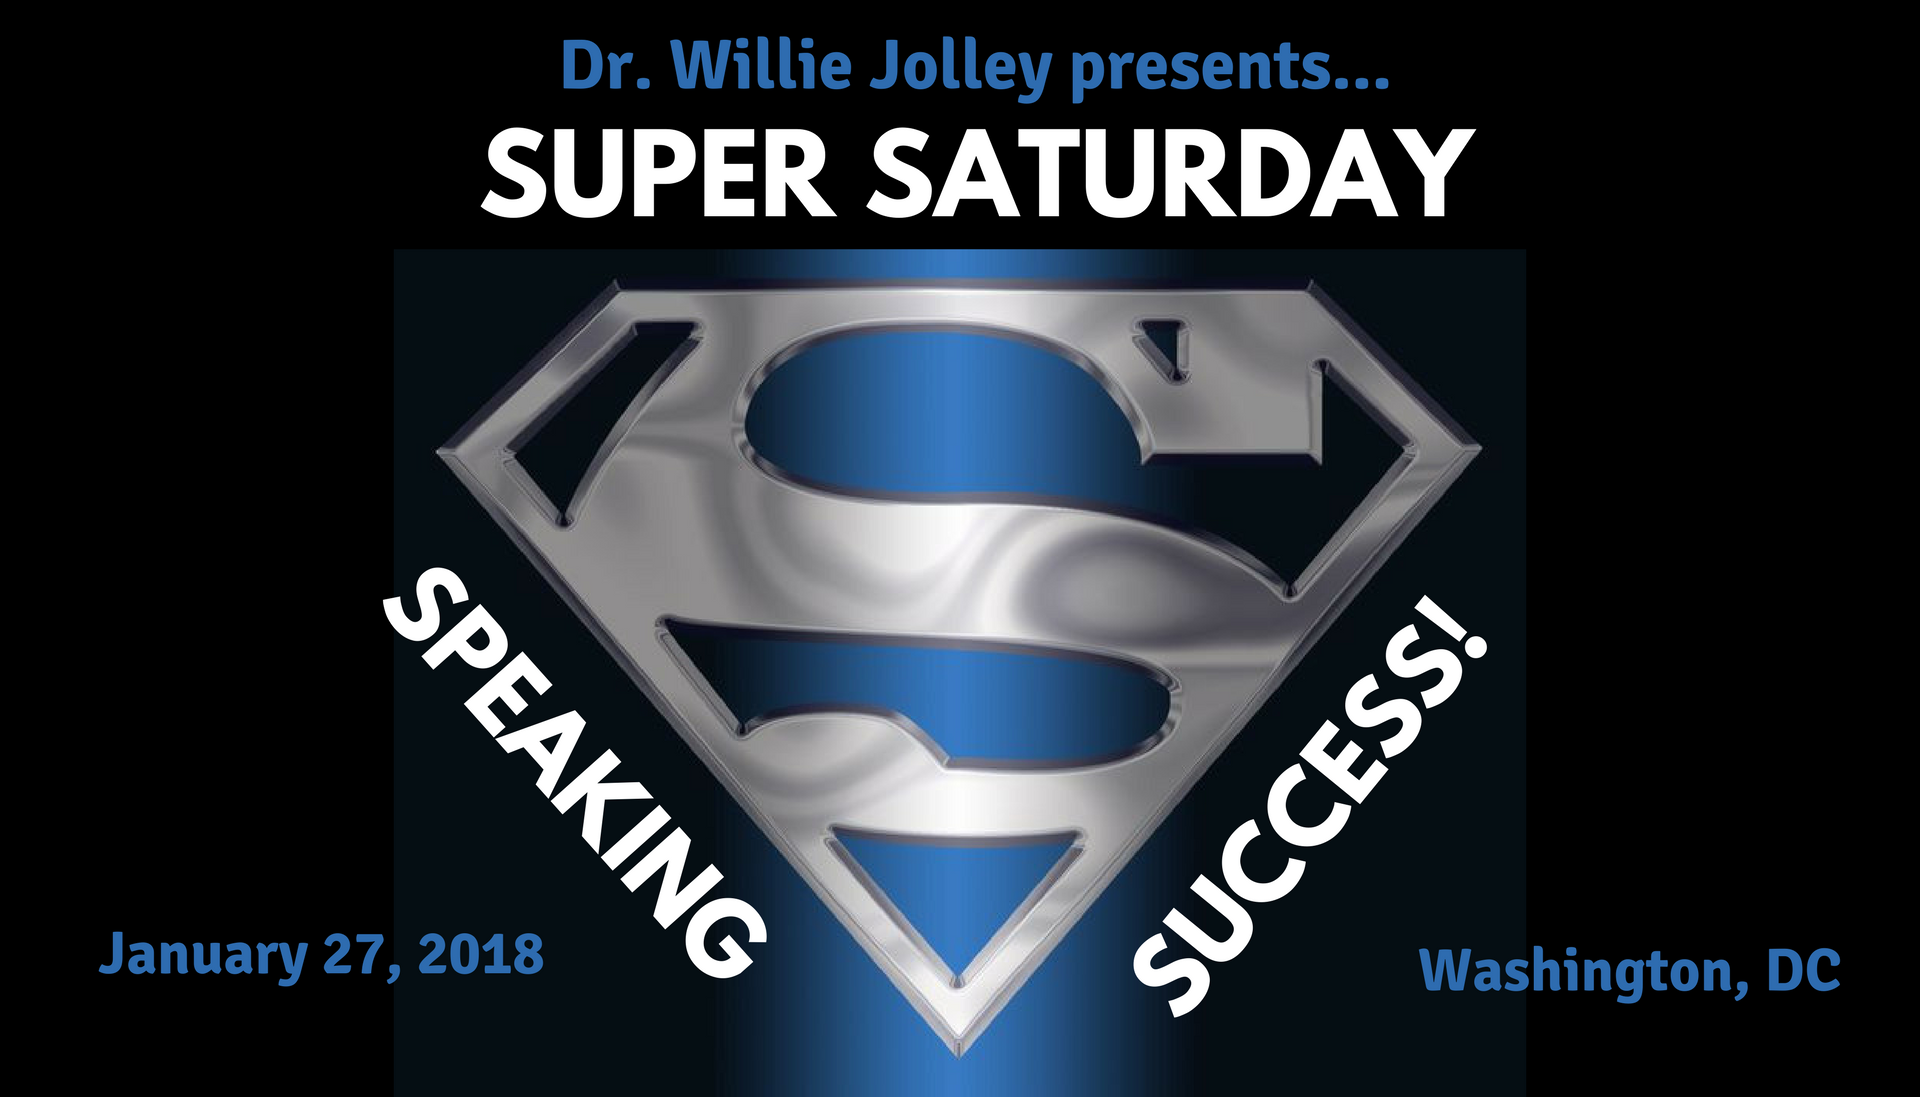 Super Saturday web banner